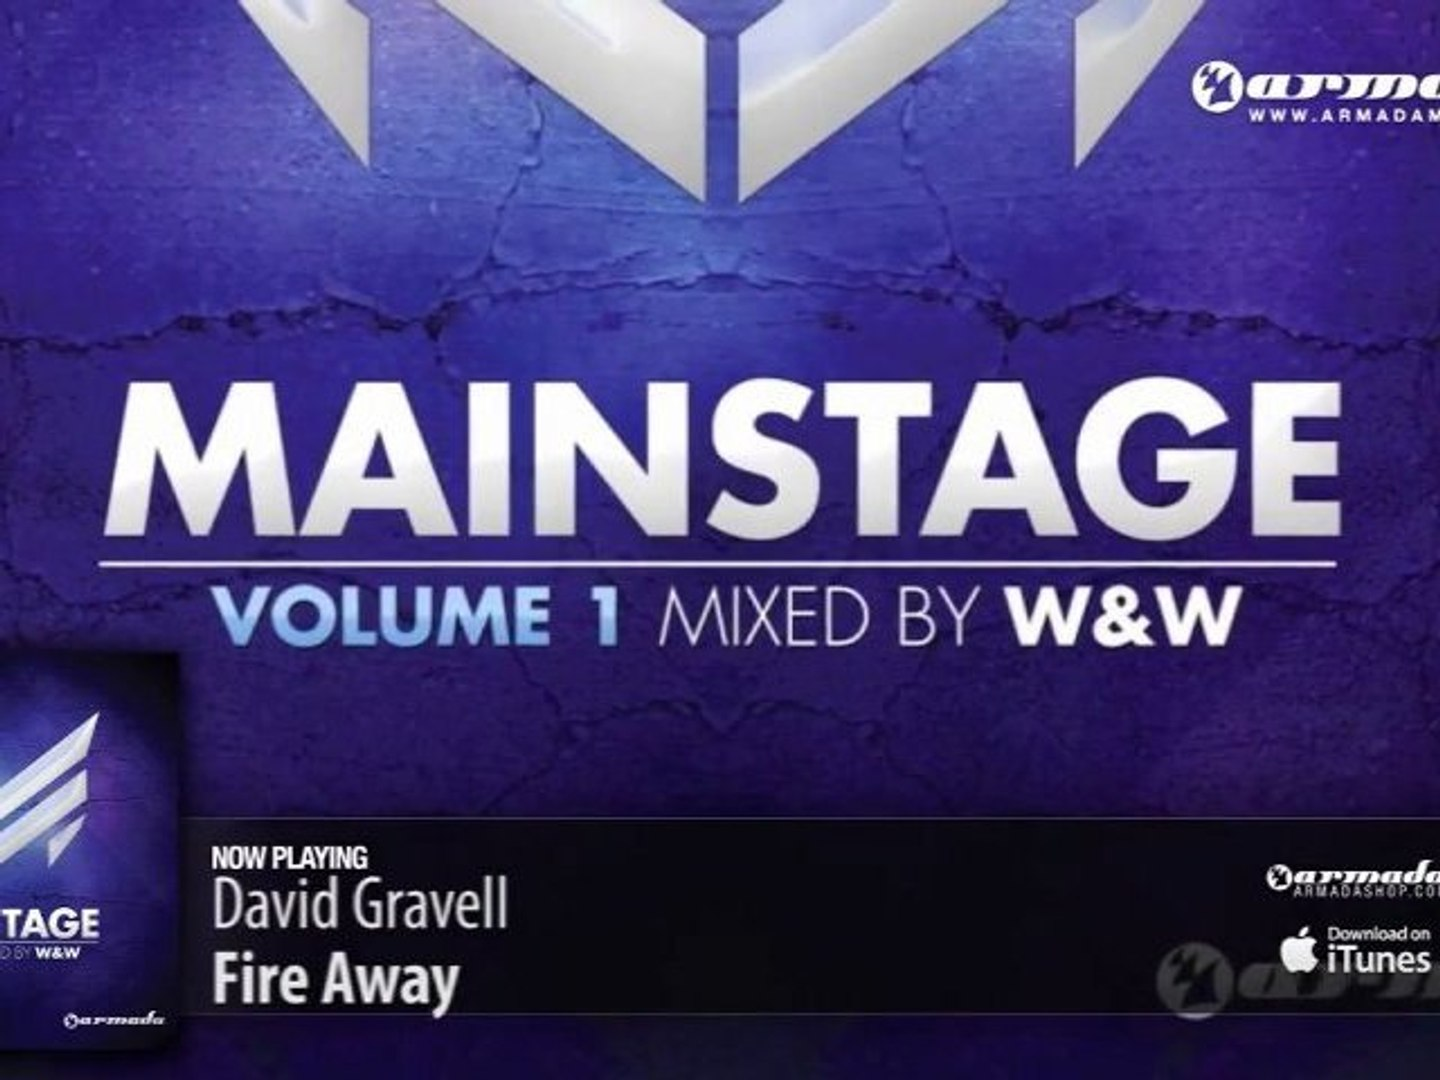 David Gravell - Fire Away (From: 'W&W - Mainstage vol. 1')